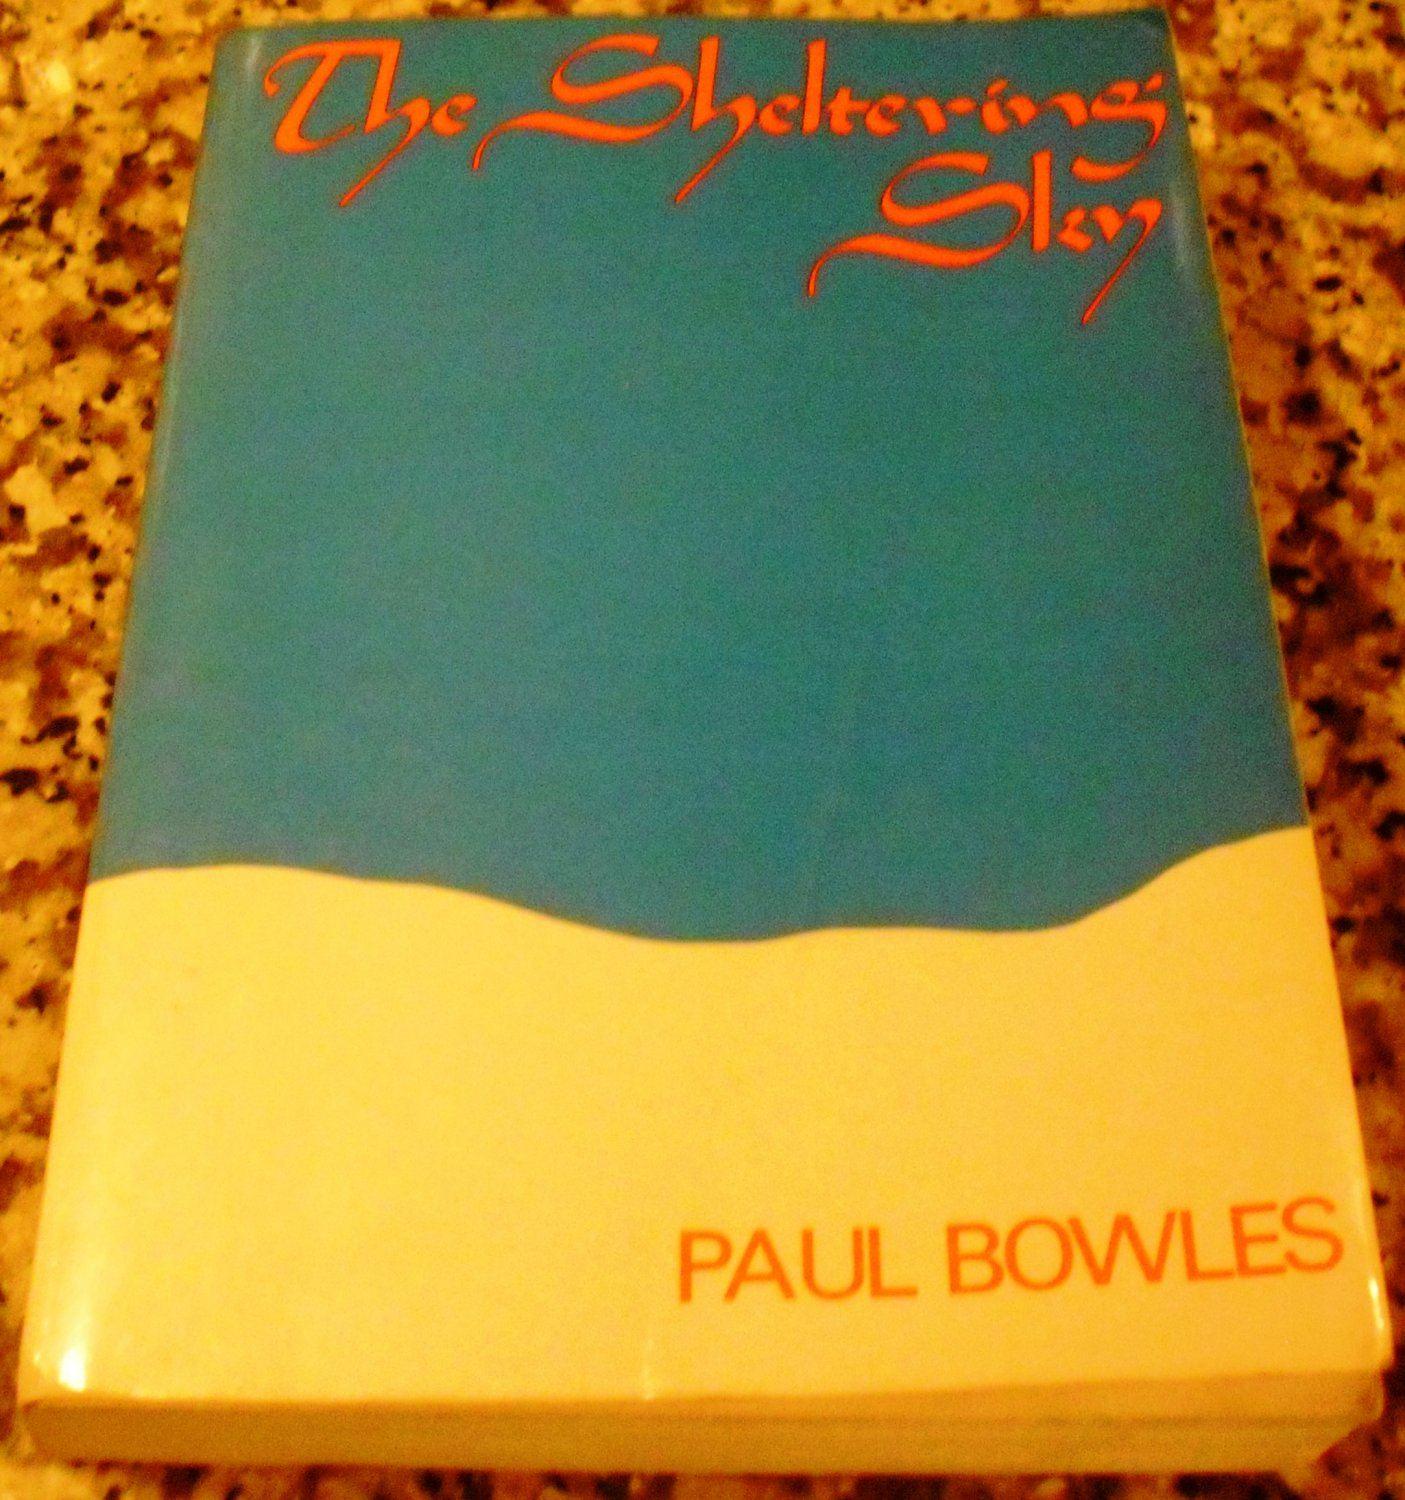 The Sheltering Sky (Neglected Books of the Twentieth Century) by Paul Bowles (Mar 1978)